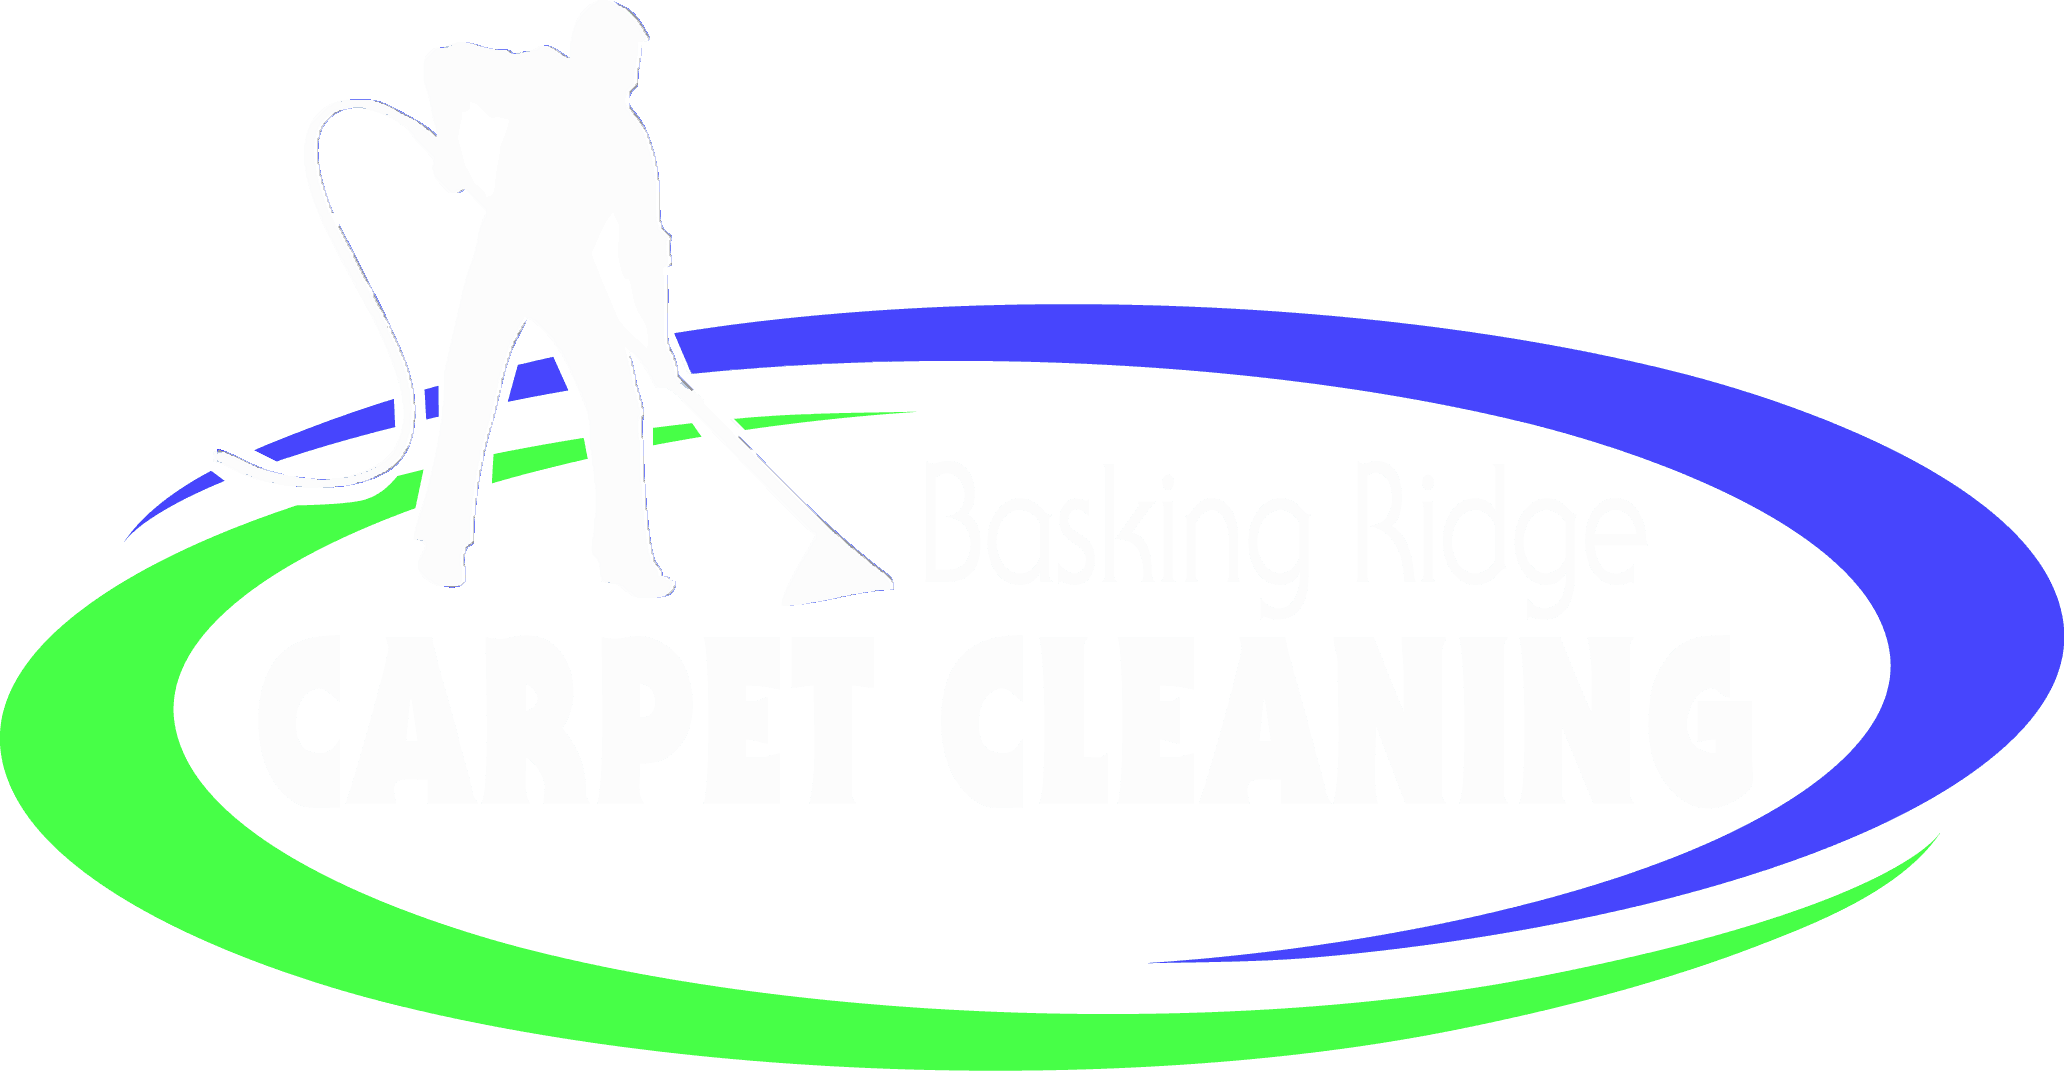 Basking ridge carpet servicing. Coupon clipart house cleaning